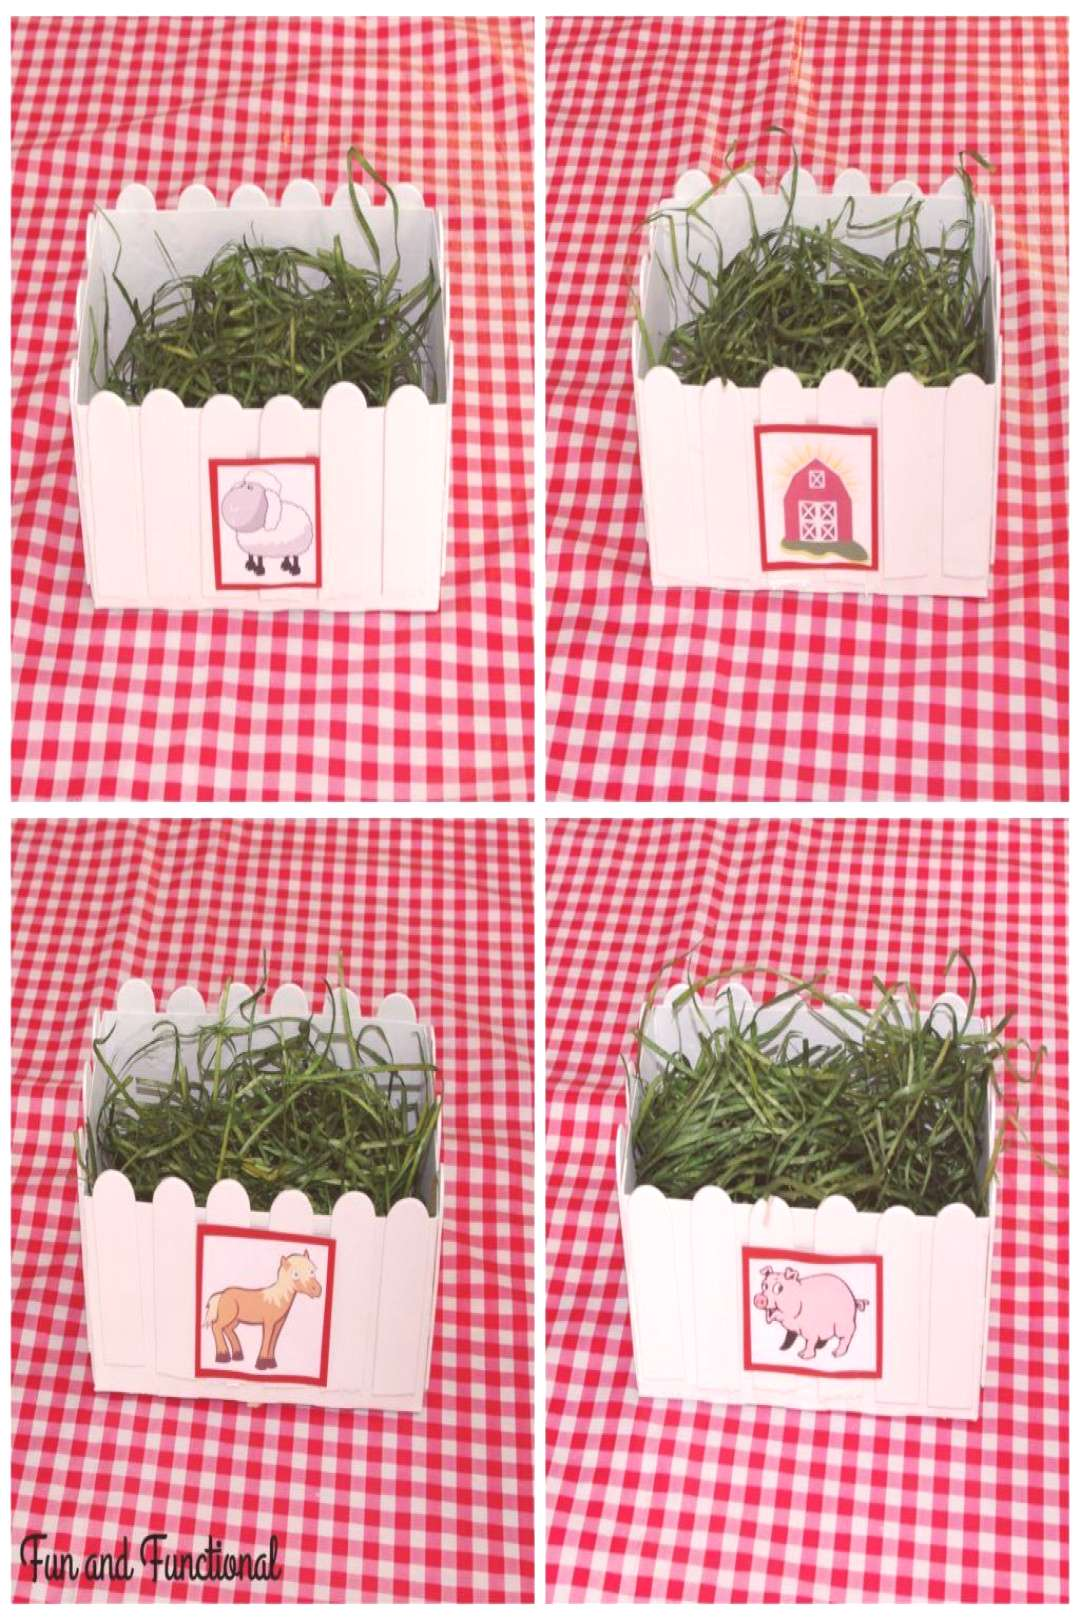 FARM BIRTHDAY PARTY POPSICLE STICK PICKET FENCE DECORATIONS - Fun And Functional Blog